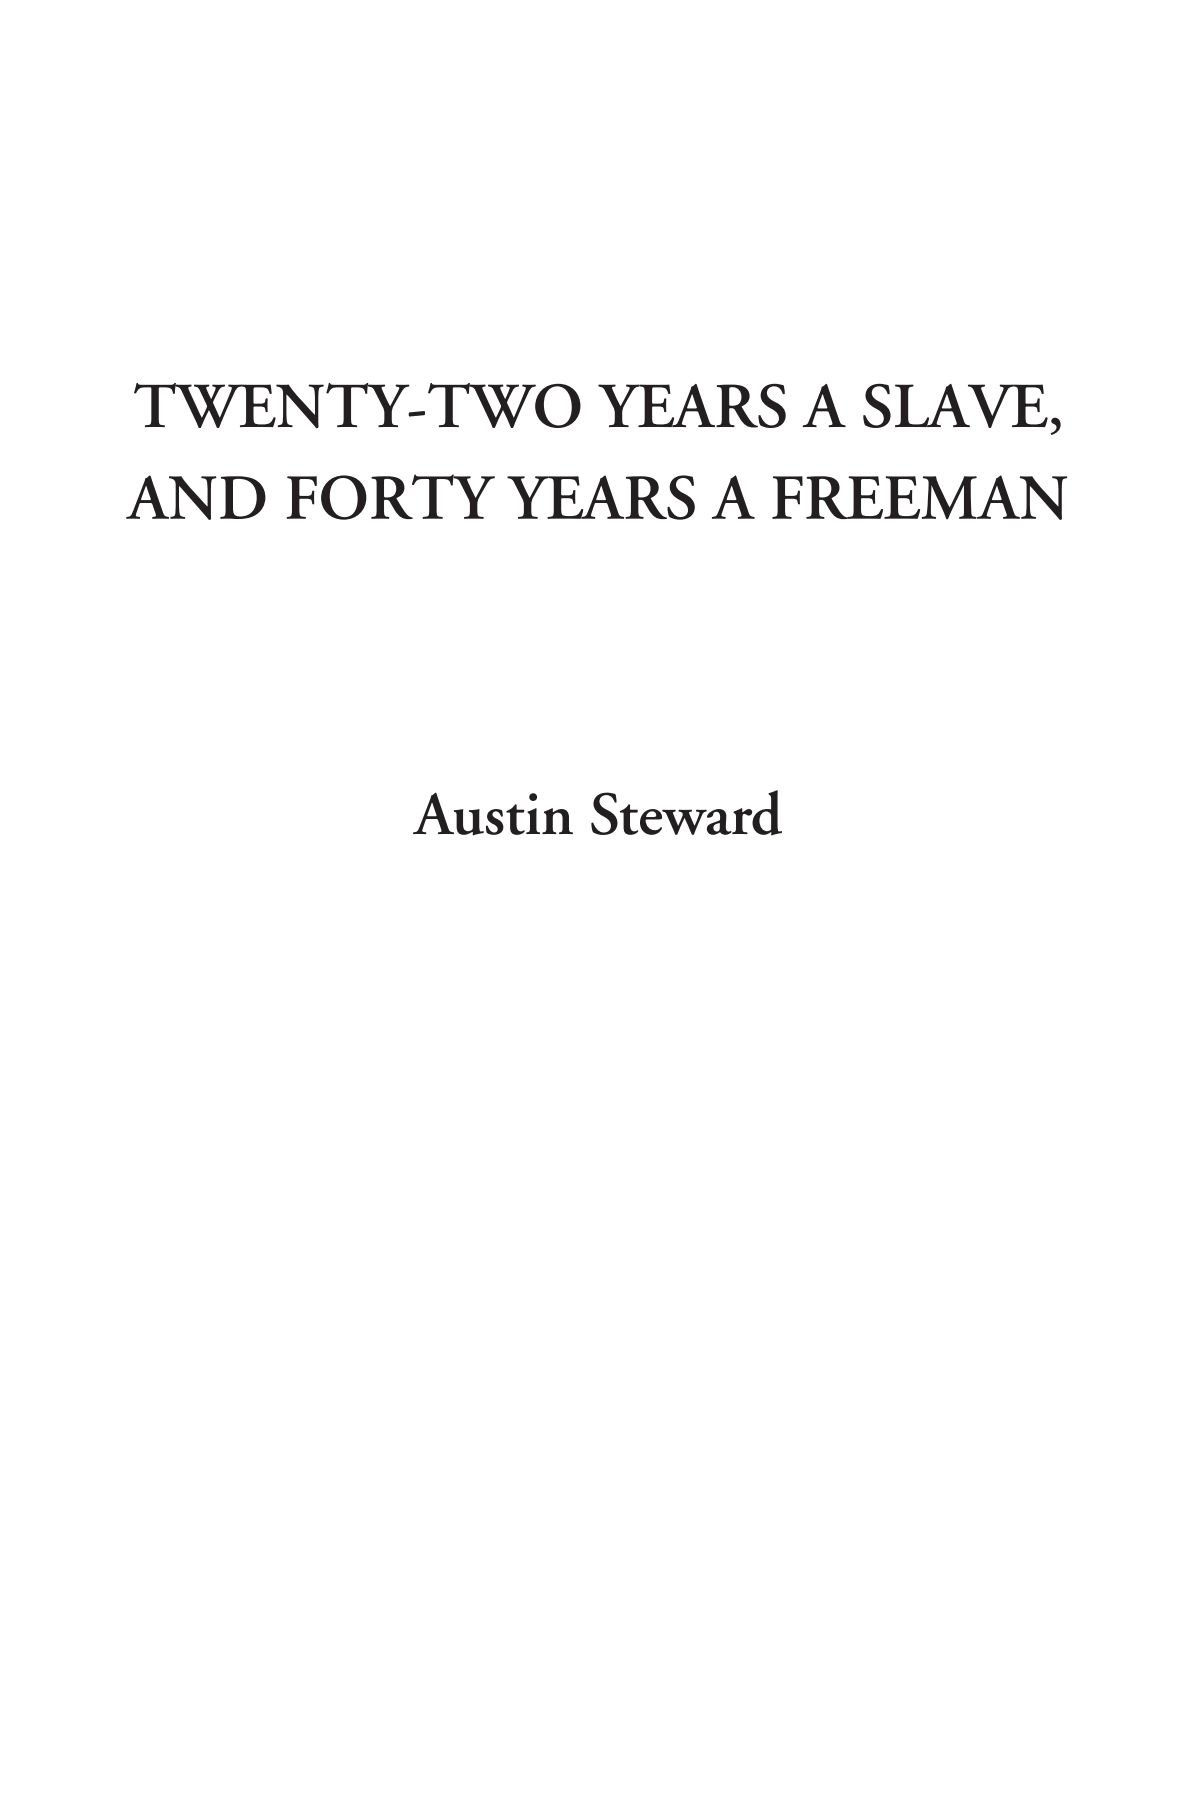 Download Twenty-Two Years a Slave, and Forty Years a Freeman ebook